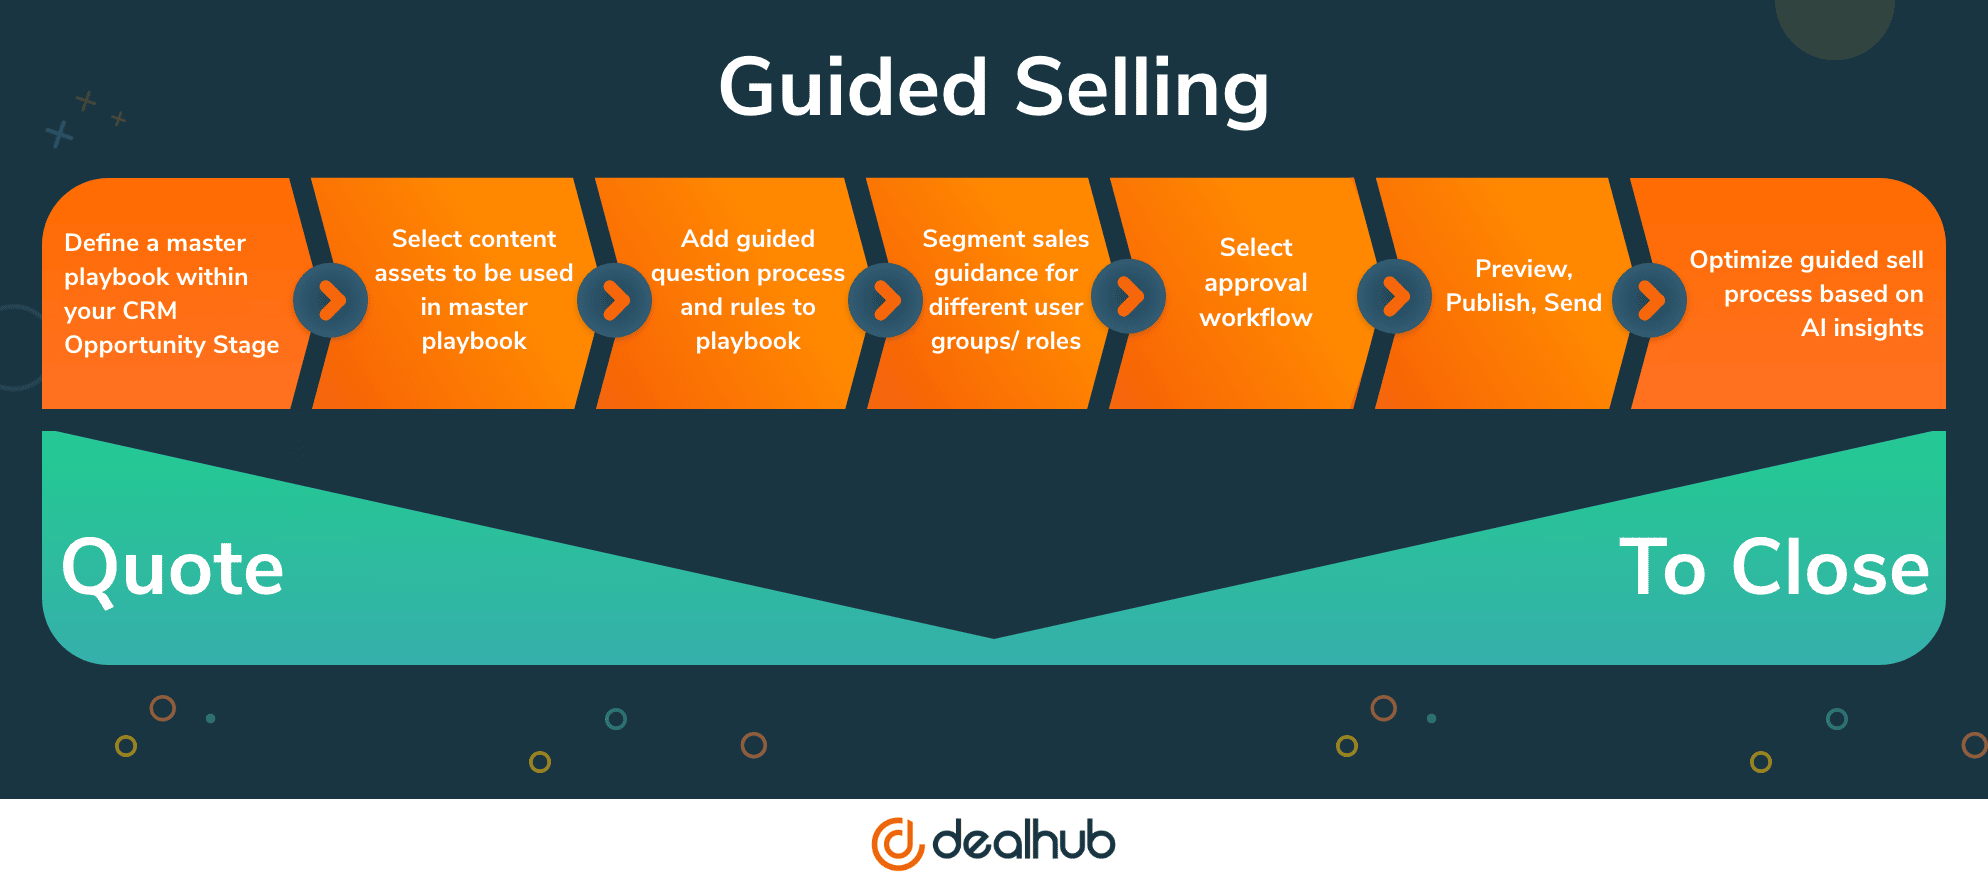 Guided Selling Process DealHub